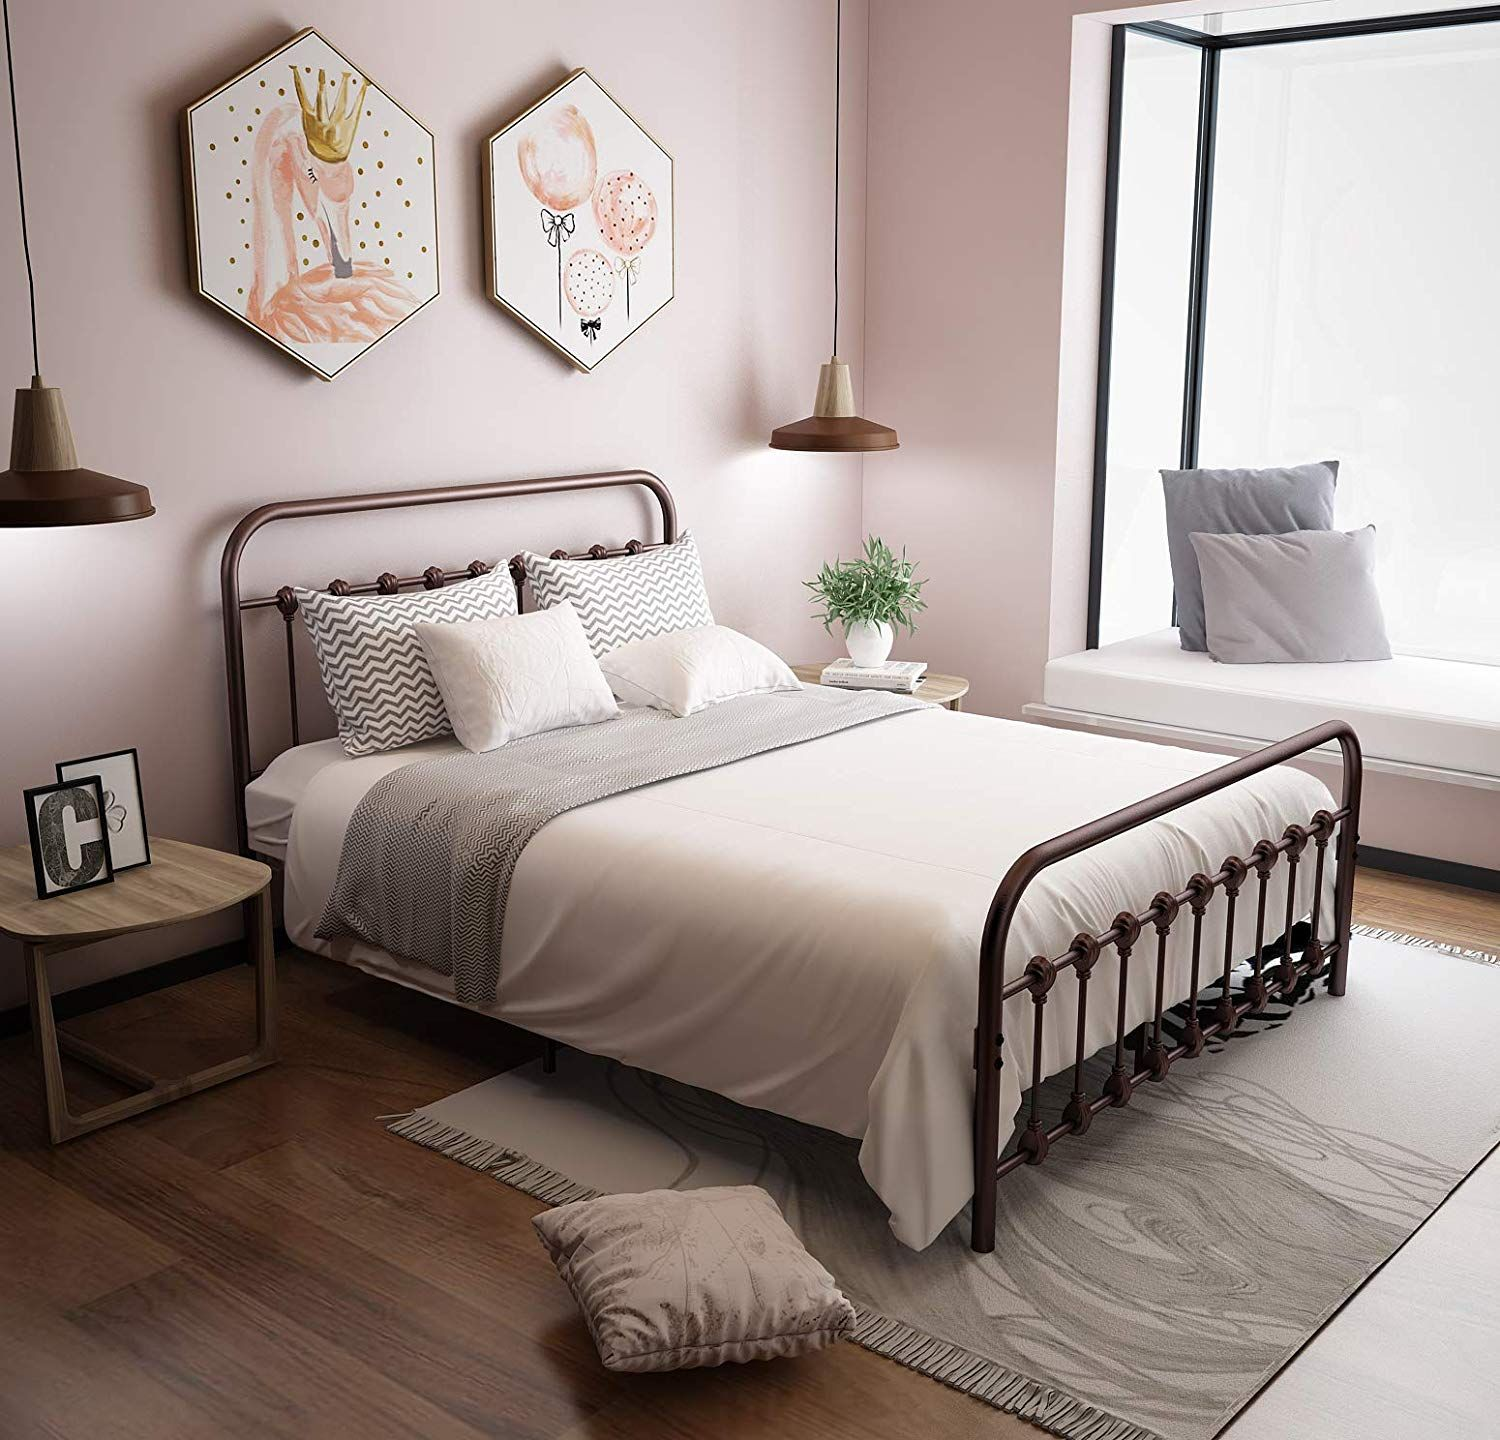 Urodecor Metal Bed Frame With Headboard And Footboard Mattress Foundation The Country Style Iro Bed Frame And Headboard Metal Bed Frame Headboard And Footboard